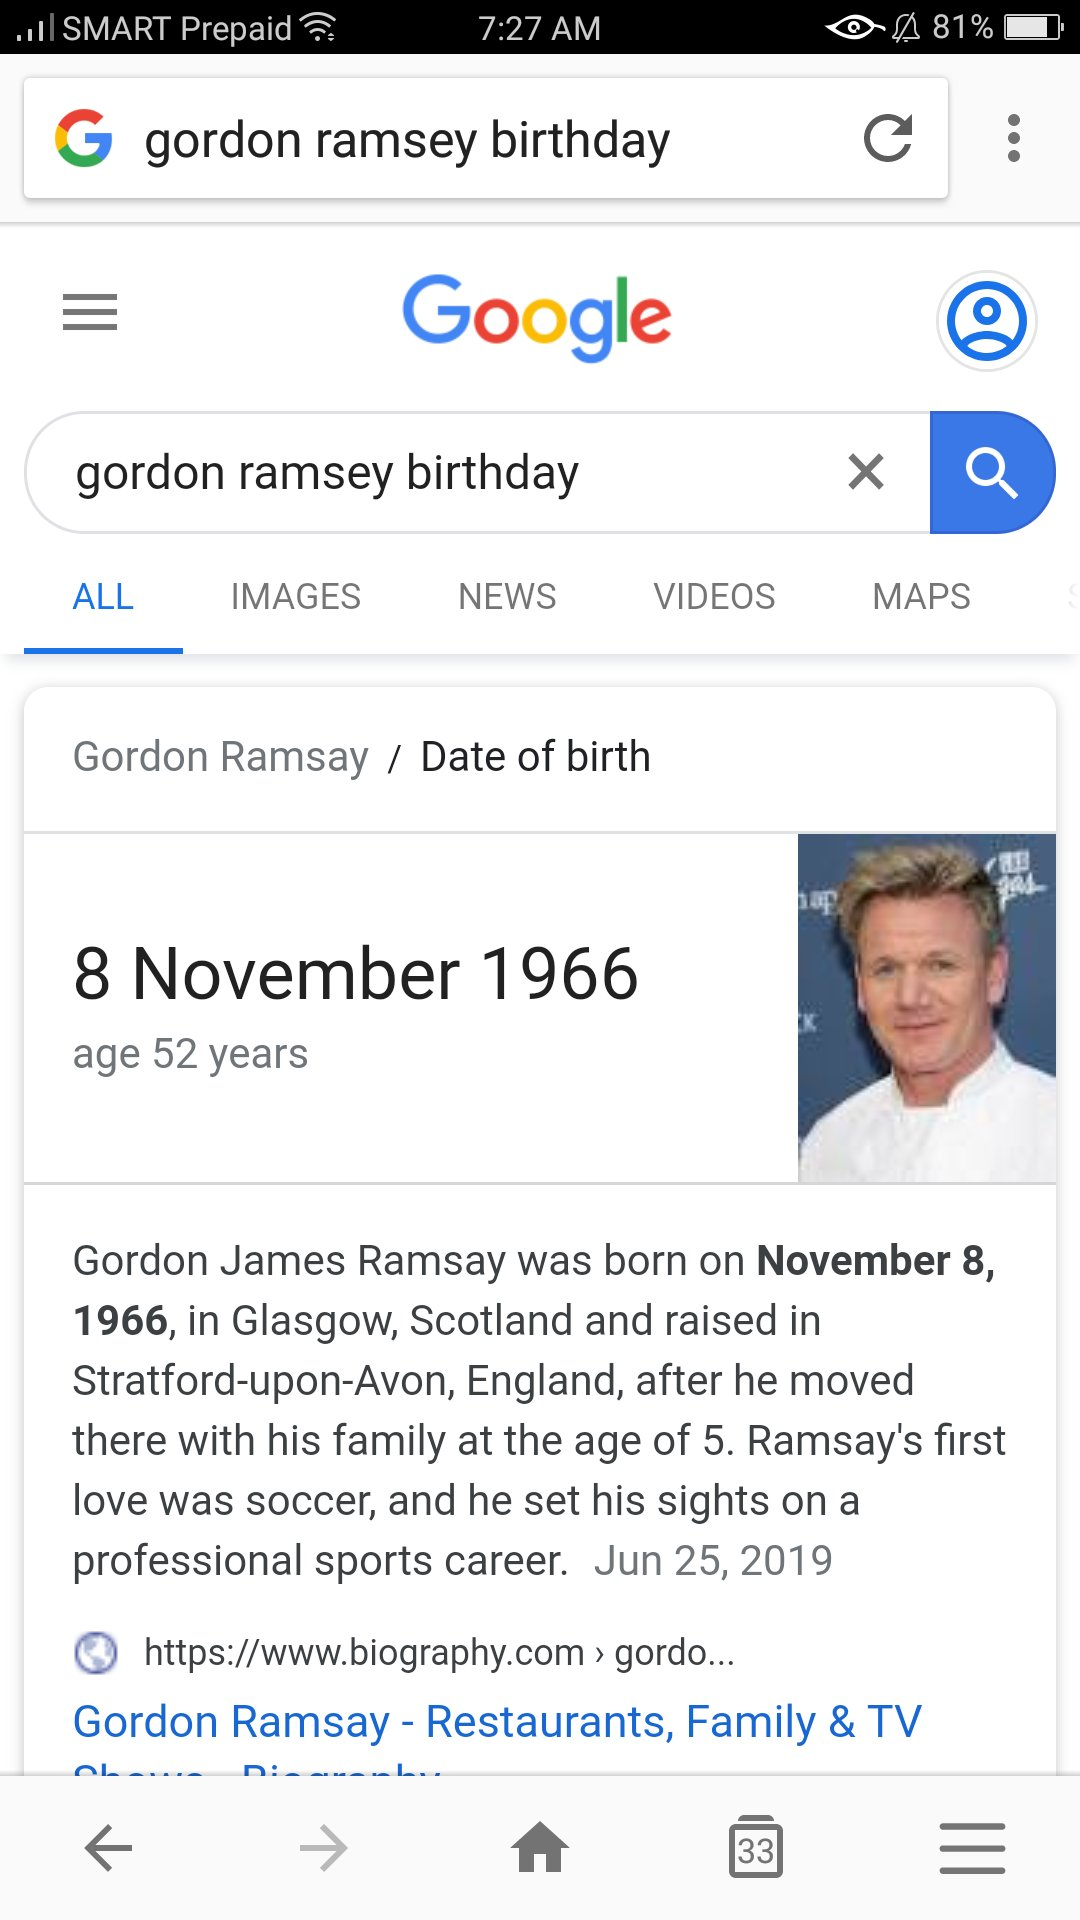 It\s Gordon Ramsay\s Birthday!!! YEYY! Happy Birthday to one of the best chefs in the world!